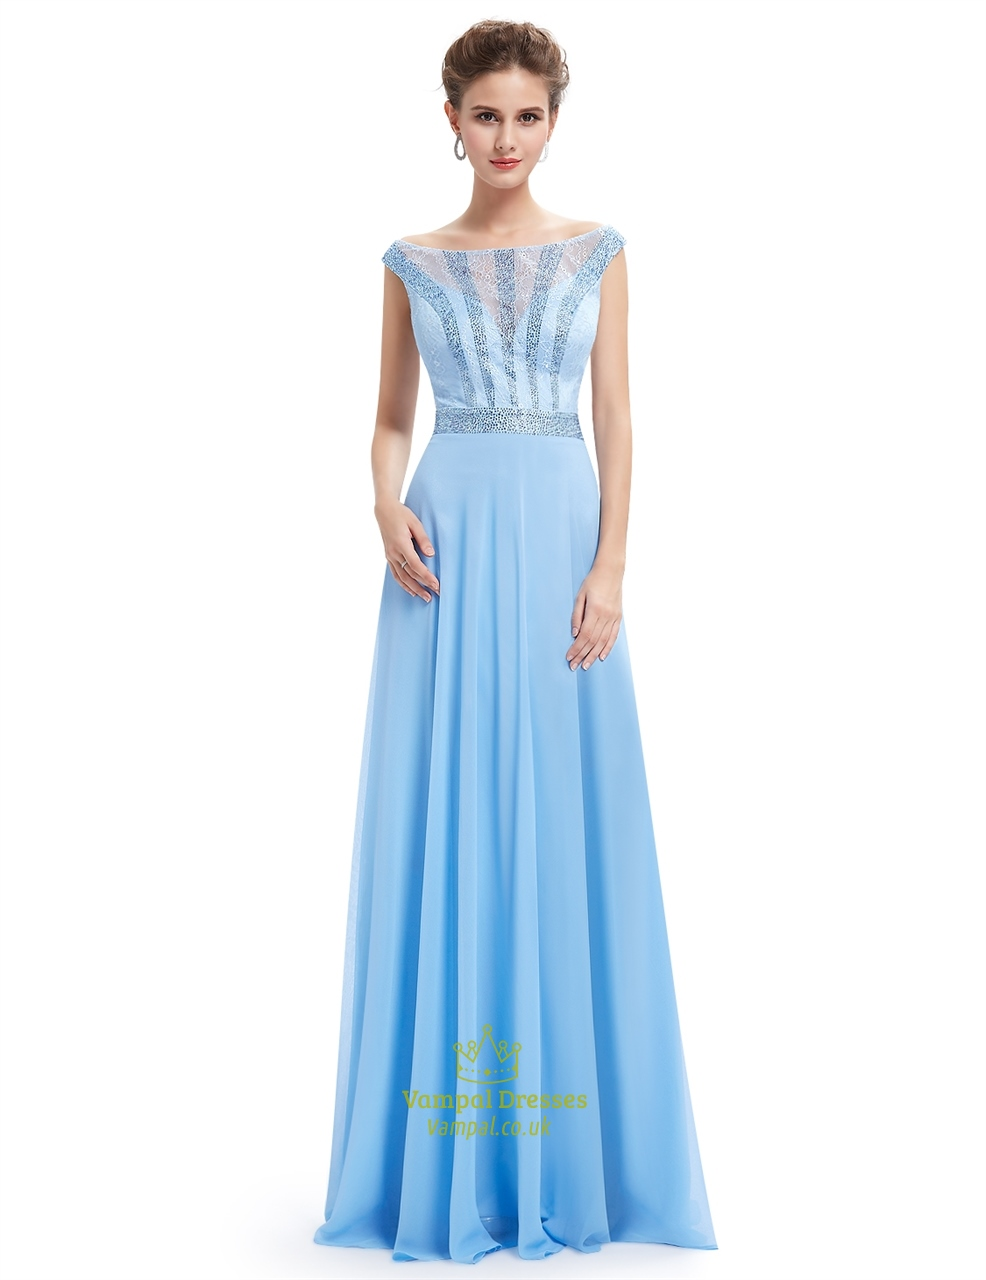 Light Blue Lace Illusion Neckline Chiffon Prom Dress With Beaded ...